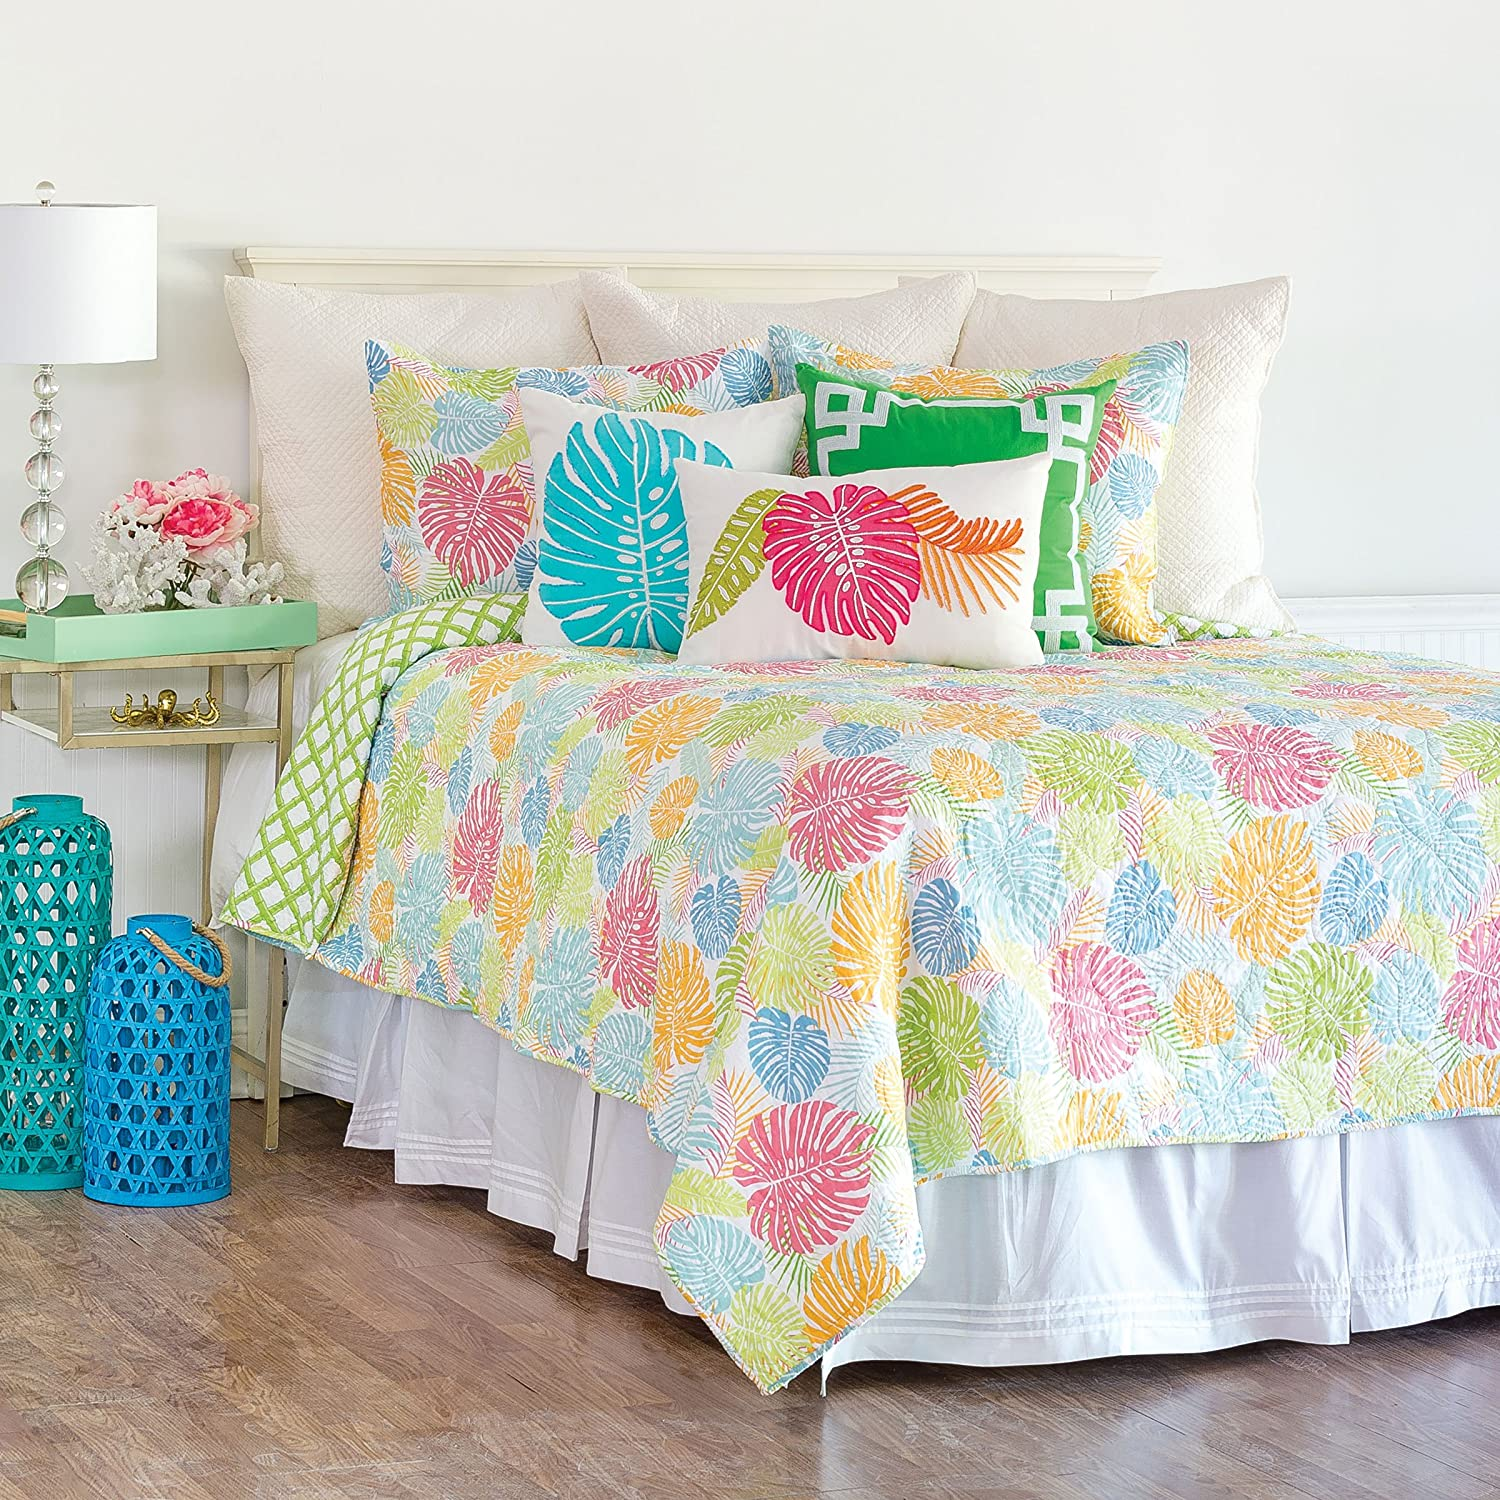 C&F Home Palm Beach Mini Set Queen or Full Size Reversible Quilt 92 X 90 Inch and 2 Standard Shams Full/Queen 3 Piece Set Green